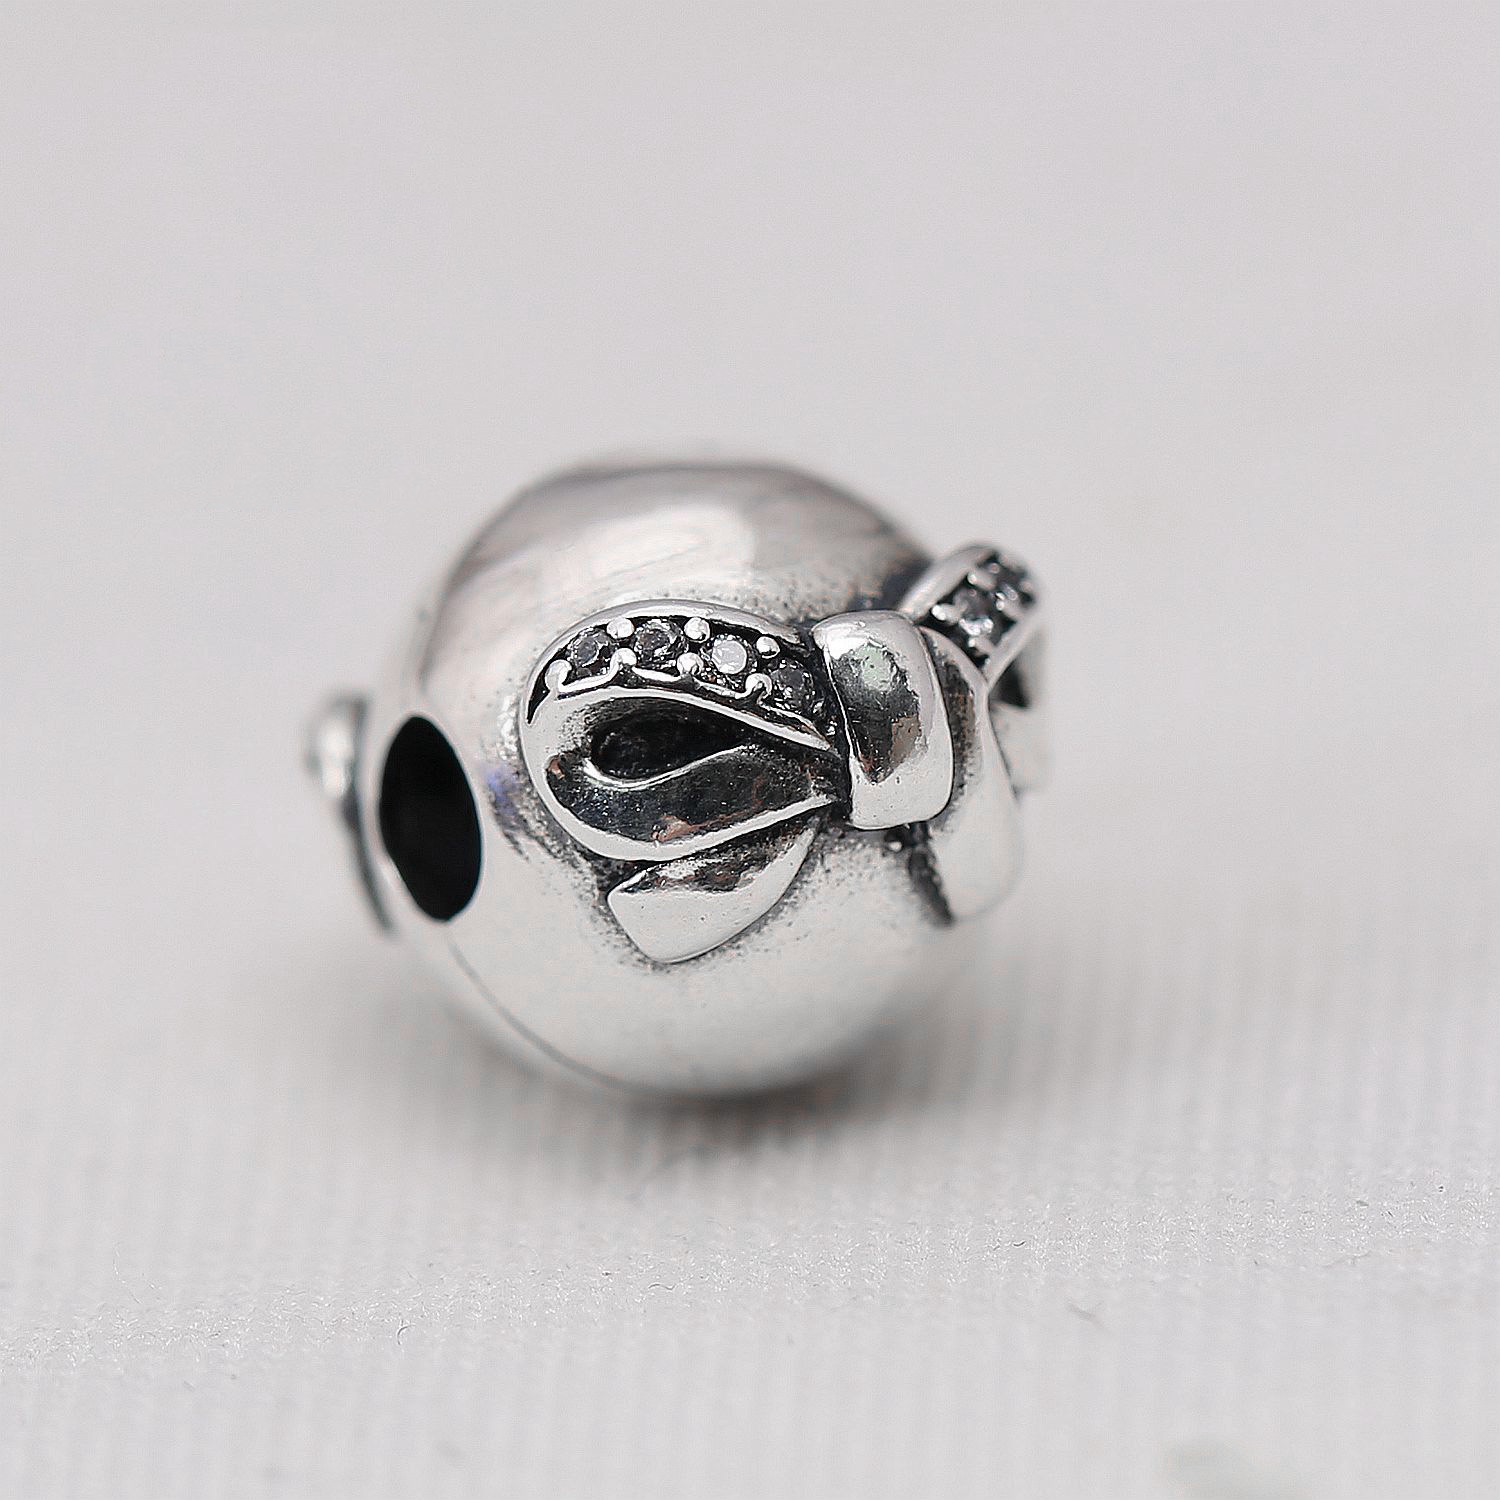 Beads & Jewelry Making 925 Sterling Silver Stopper Beads Bowknot Clips Lock Charms For Original Pandora 925 Sterling Silver Bracelets Bangles Xcy163 New Varieties Are Introduced One After Another